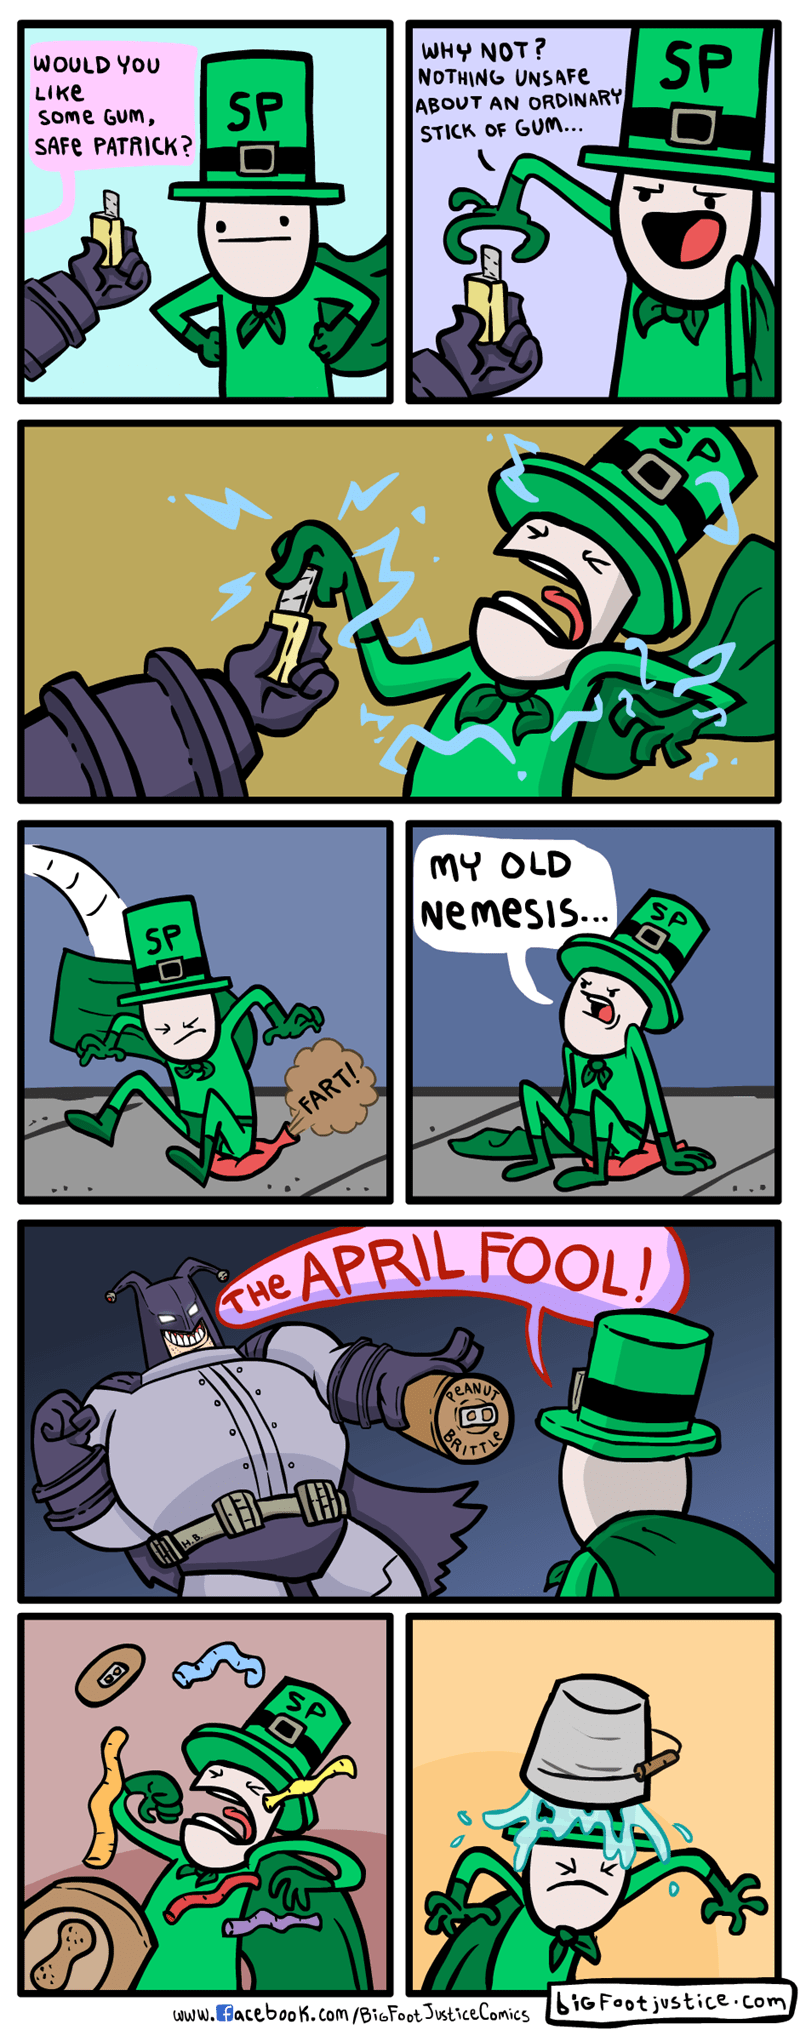 St Patrick's Day april fools lol batman web comics - 8763498496